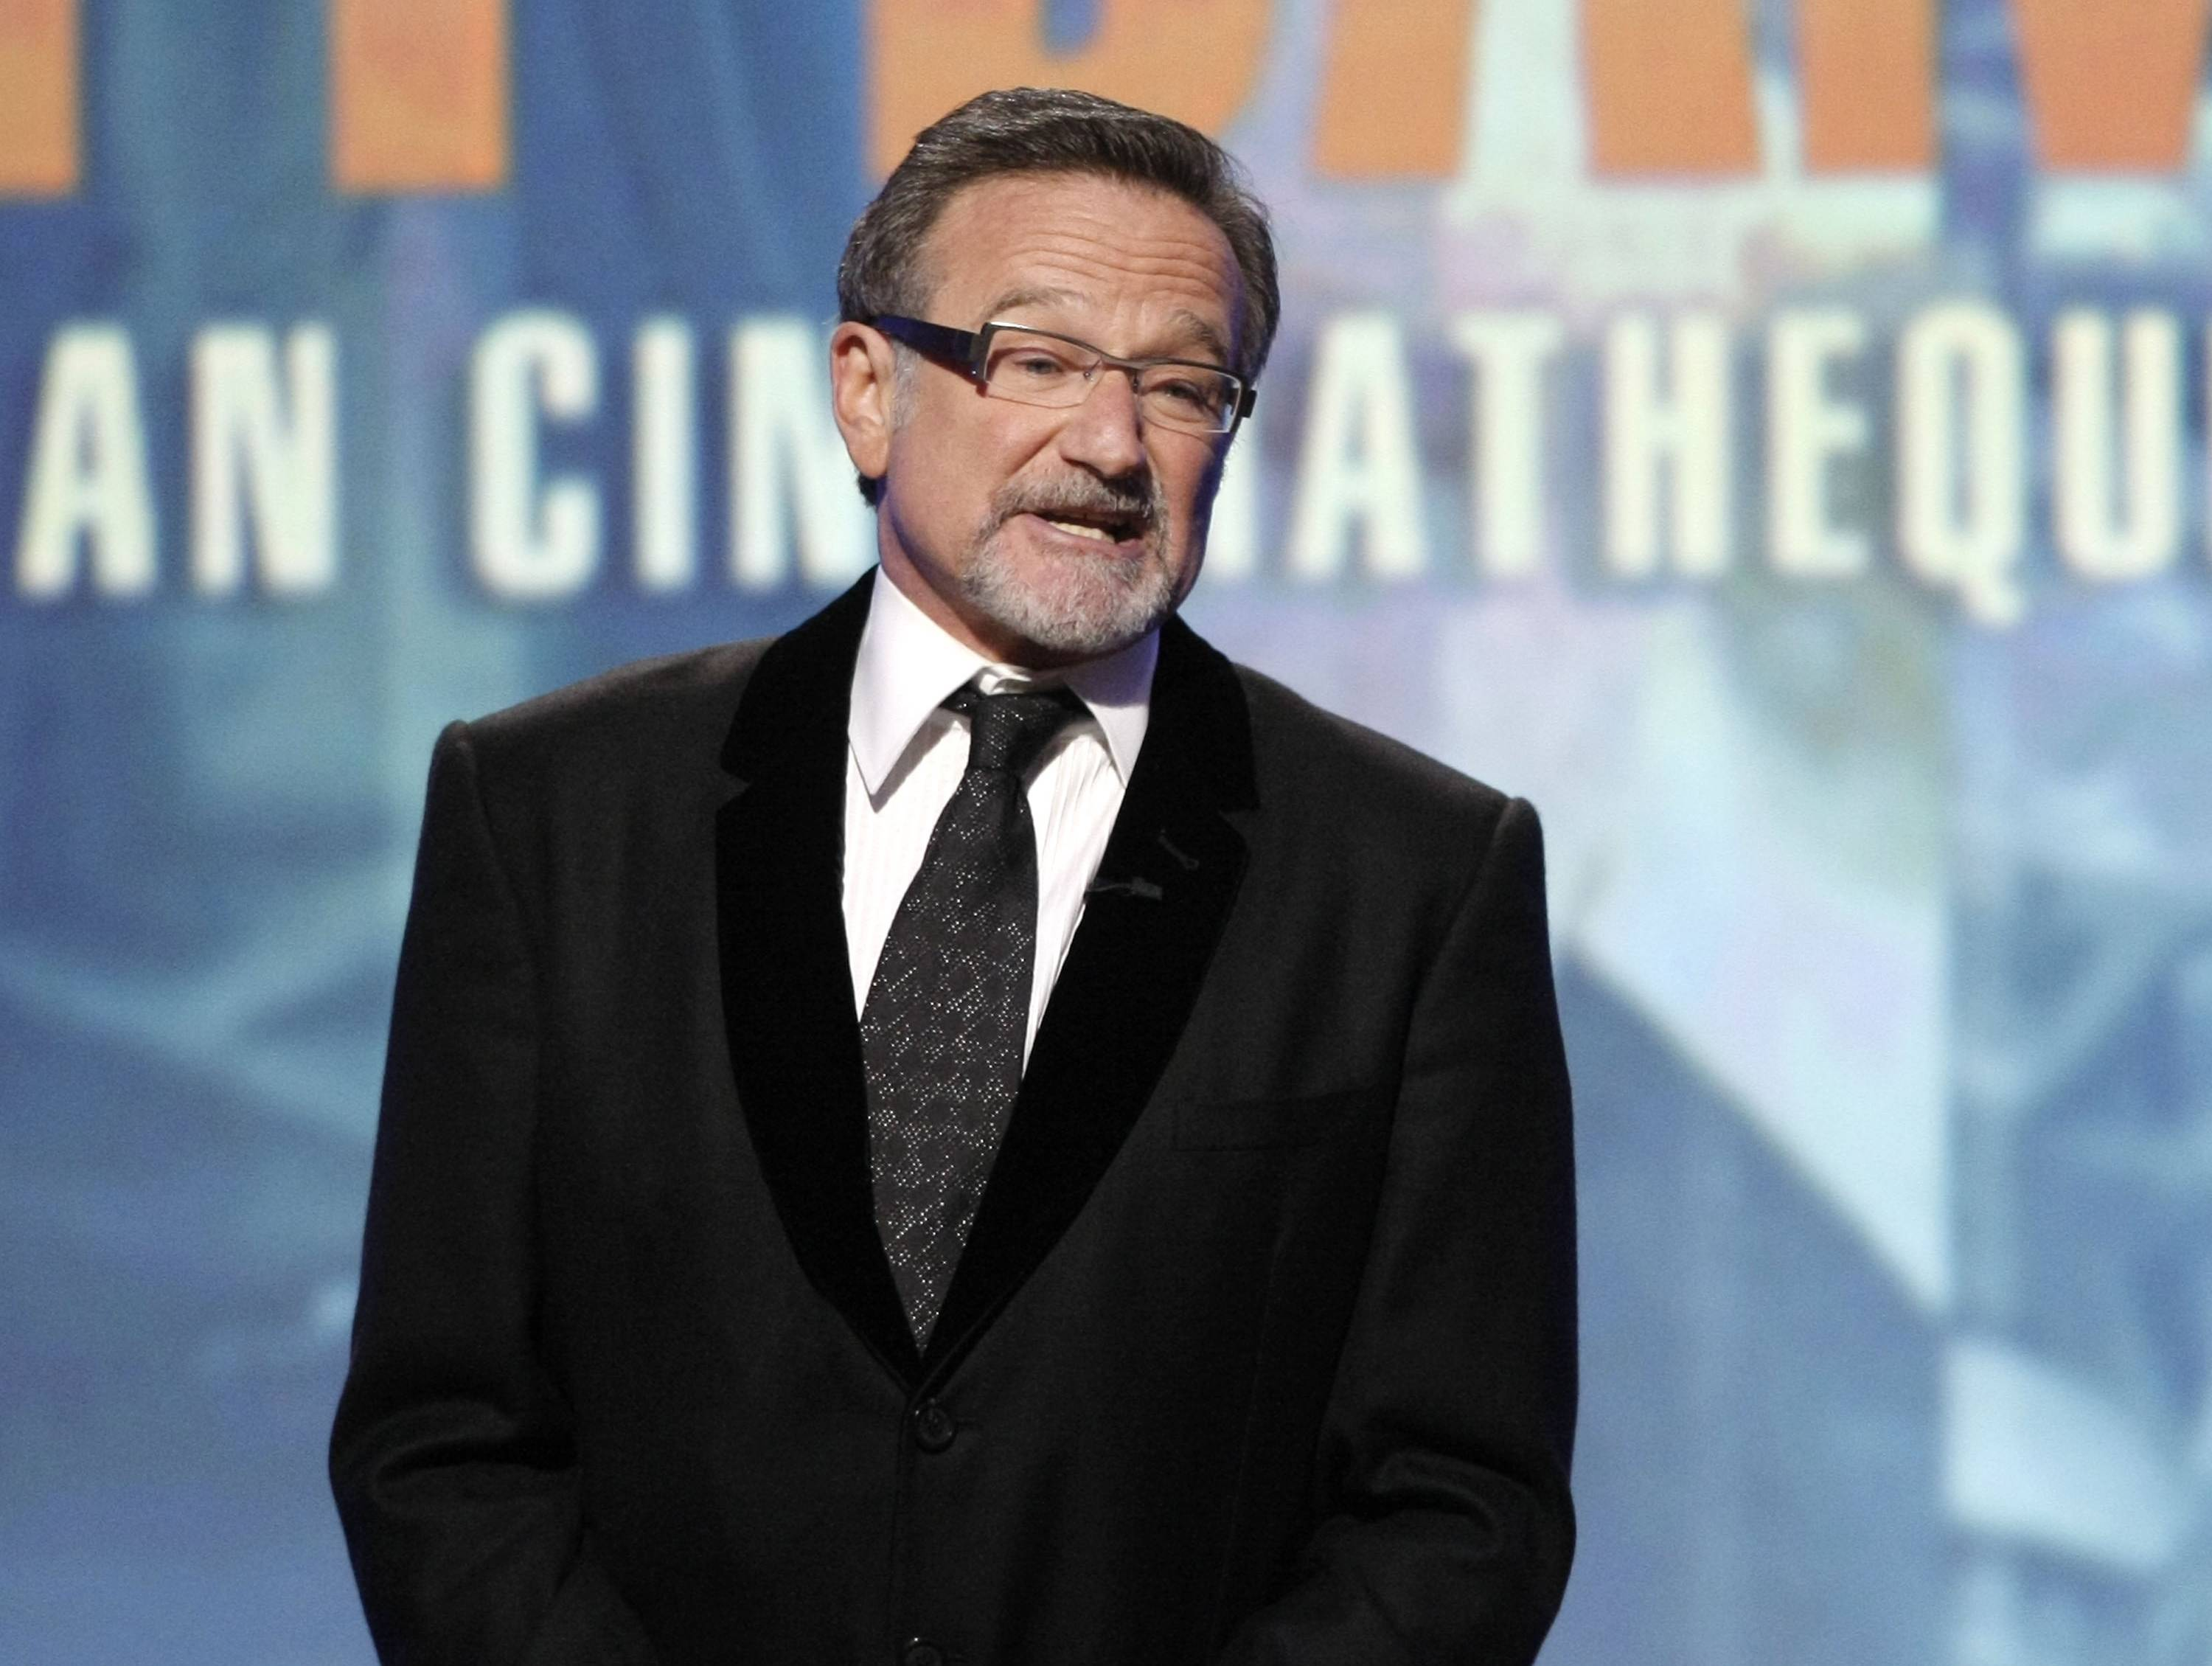 Robin Williams, whose free-form comedy and adept impressions dazzled audiences for decades, died Monday. He was 63.